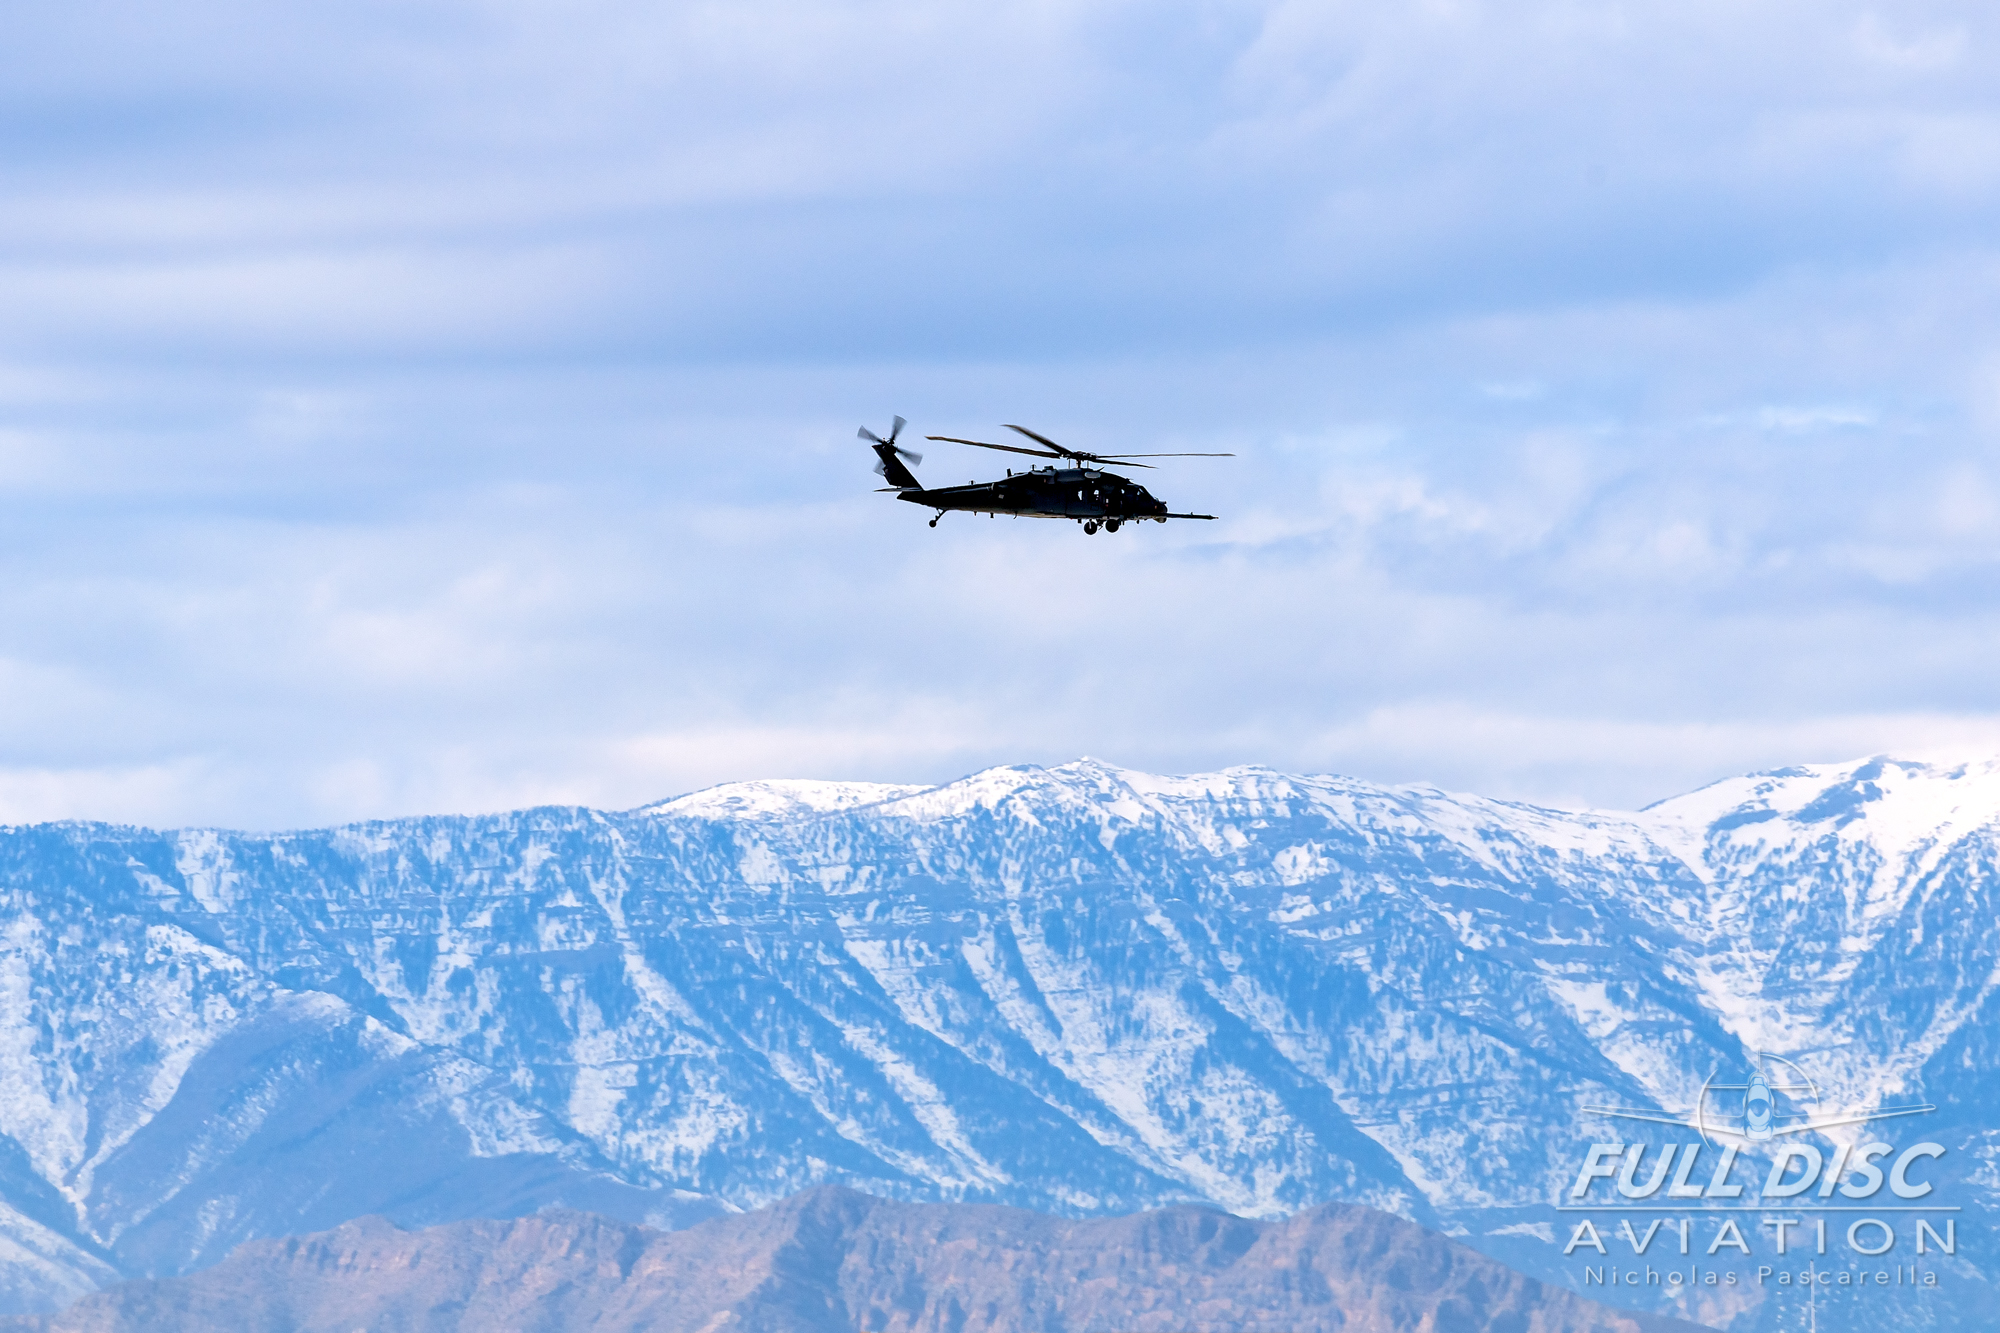 nickpascarella_nicholaspascarella_fulldiscaviation_aircraft_helicopter_nellis_mountains.jpg